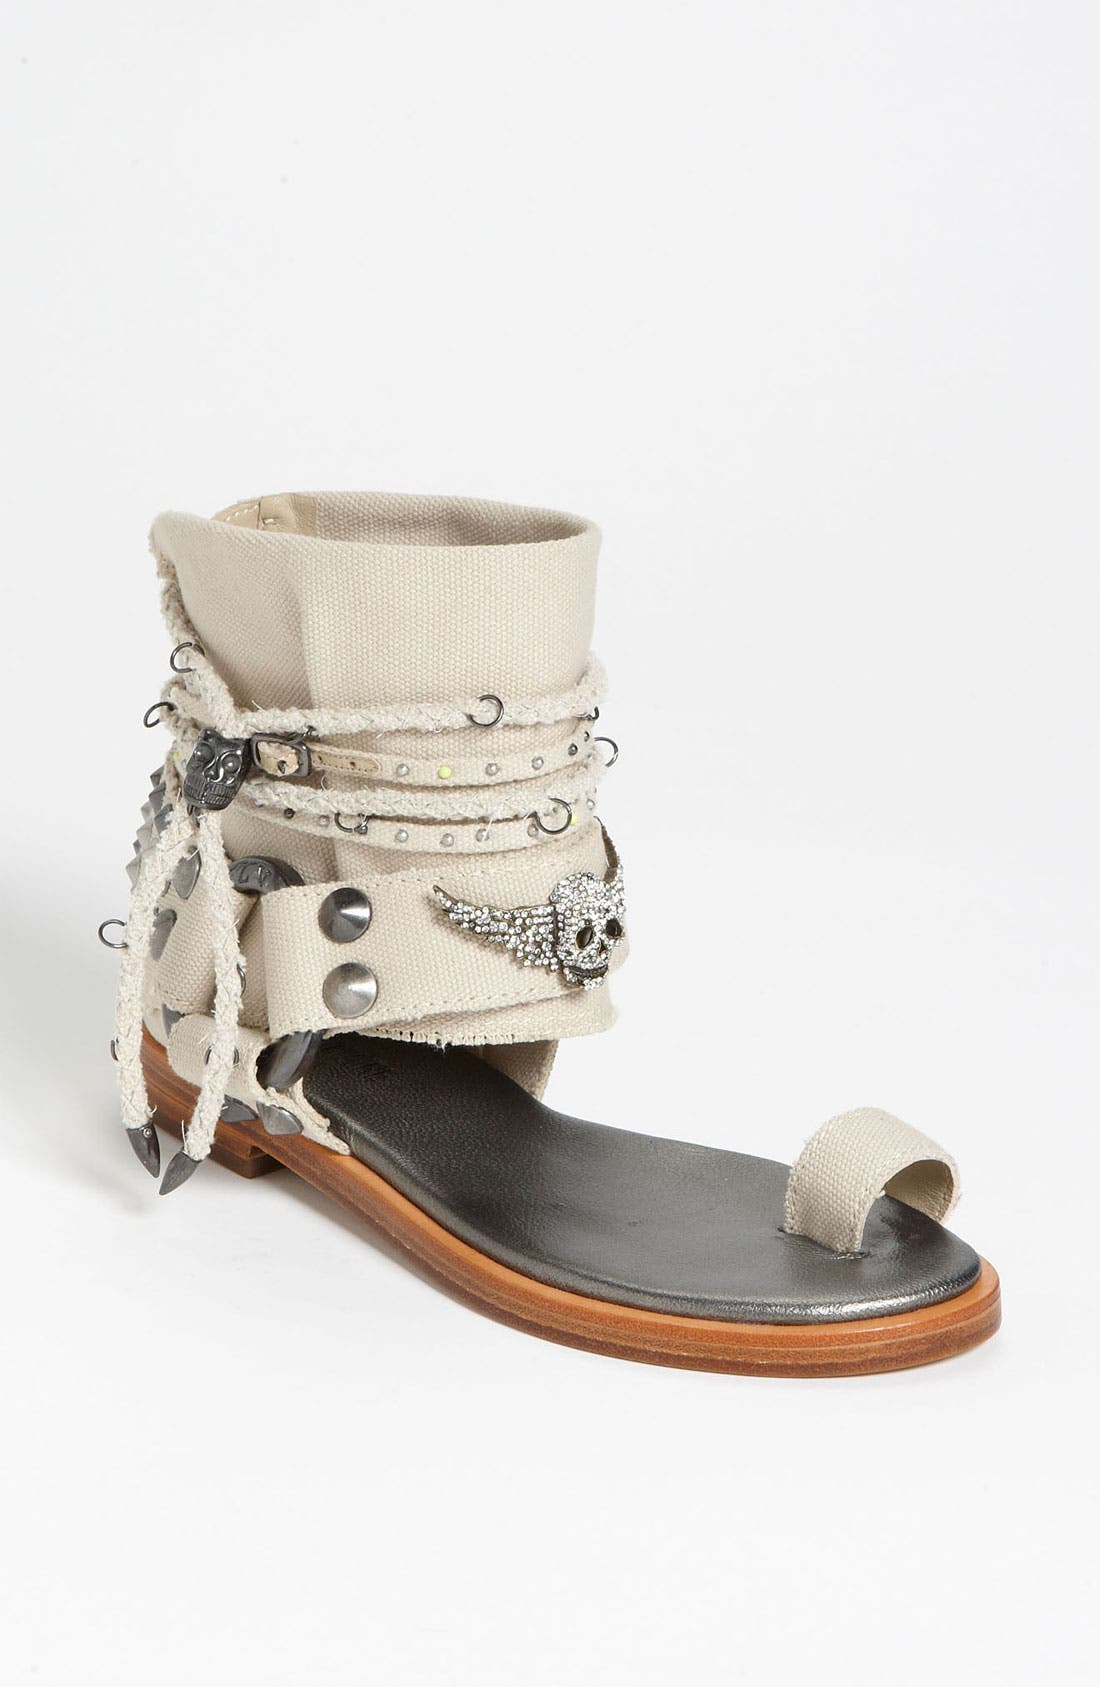 Alternate Image 1 Selected - Zadig & Voltaire 'Page III' Sandal